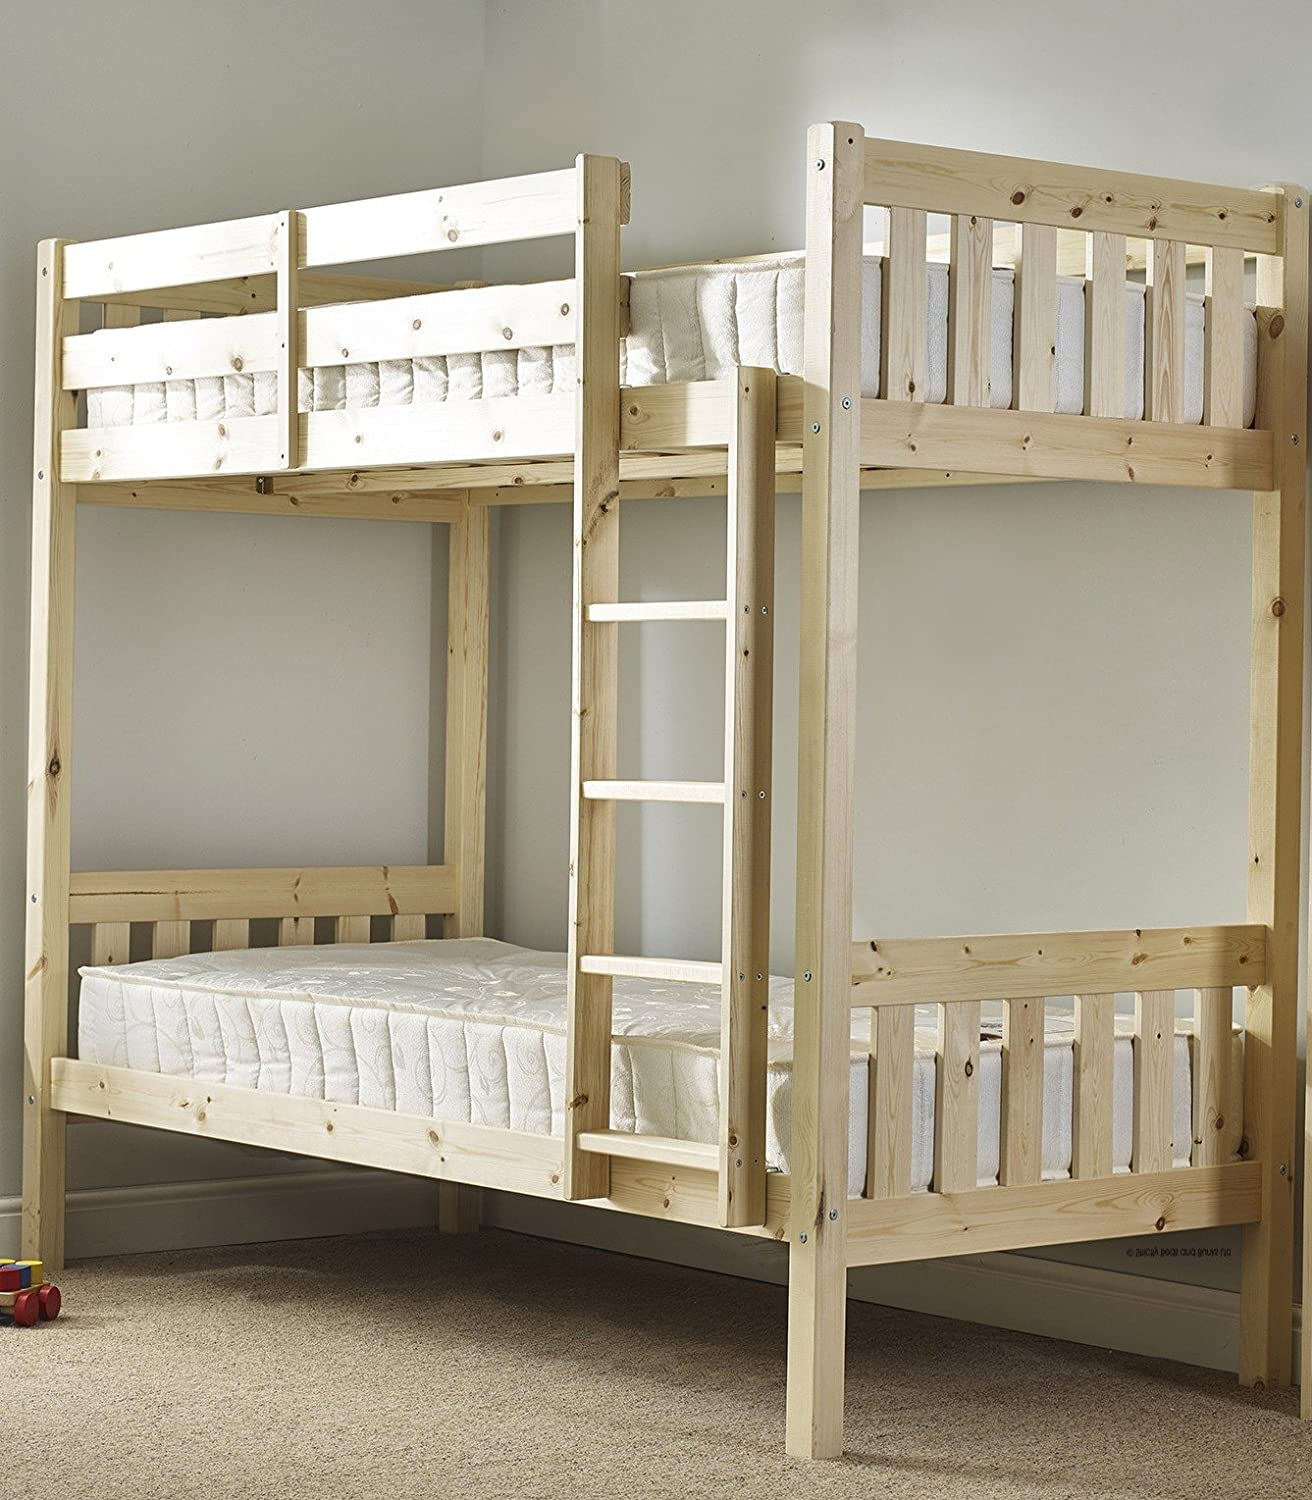 Small Beds For Adults Part - 50: Adult Bunkbed 2ft 6 Small Single Shaker Solid Pine Bunk Bed - Can Be Used By